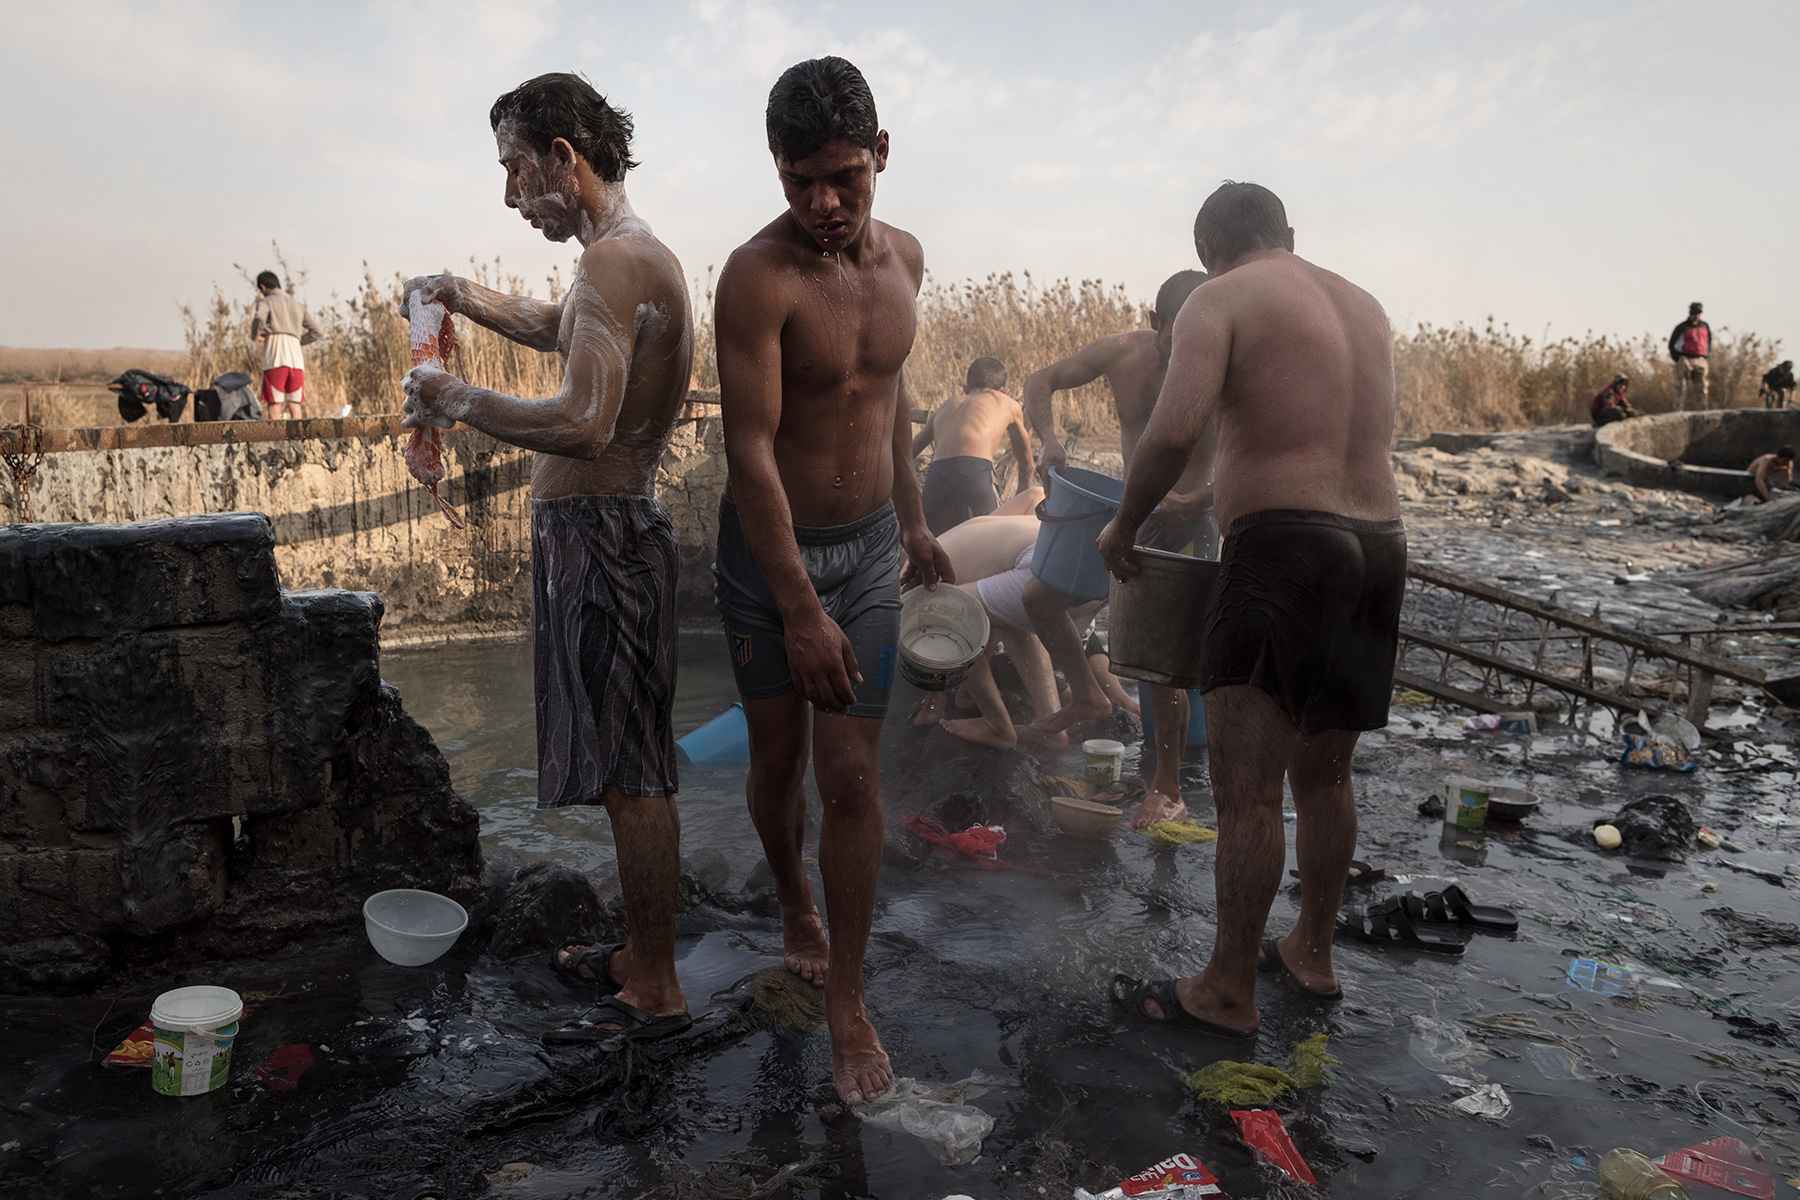 Sulphured waters smoke in concrete vats on the edges of the Tiger, in the thermal city of Hammam al-Alil, Iraq on Jan. 8, 2017. Men and boys gather there to wash and to relax themselves.